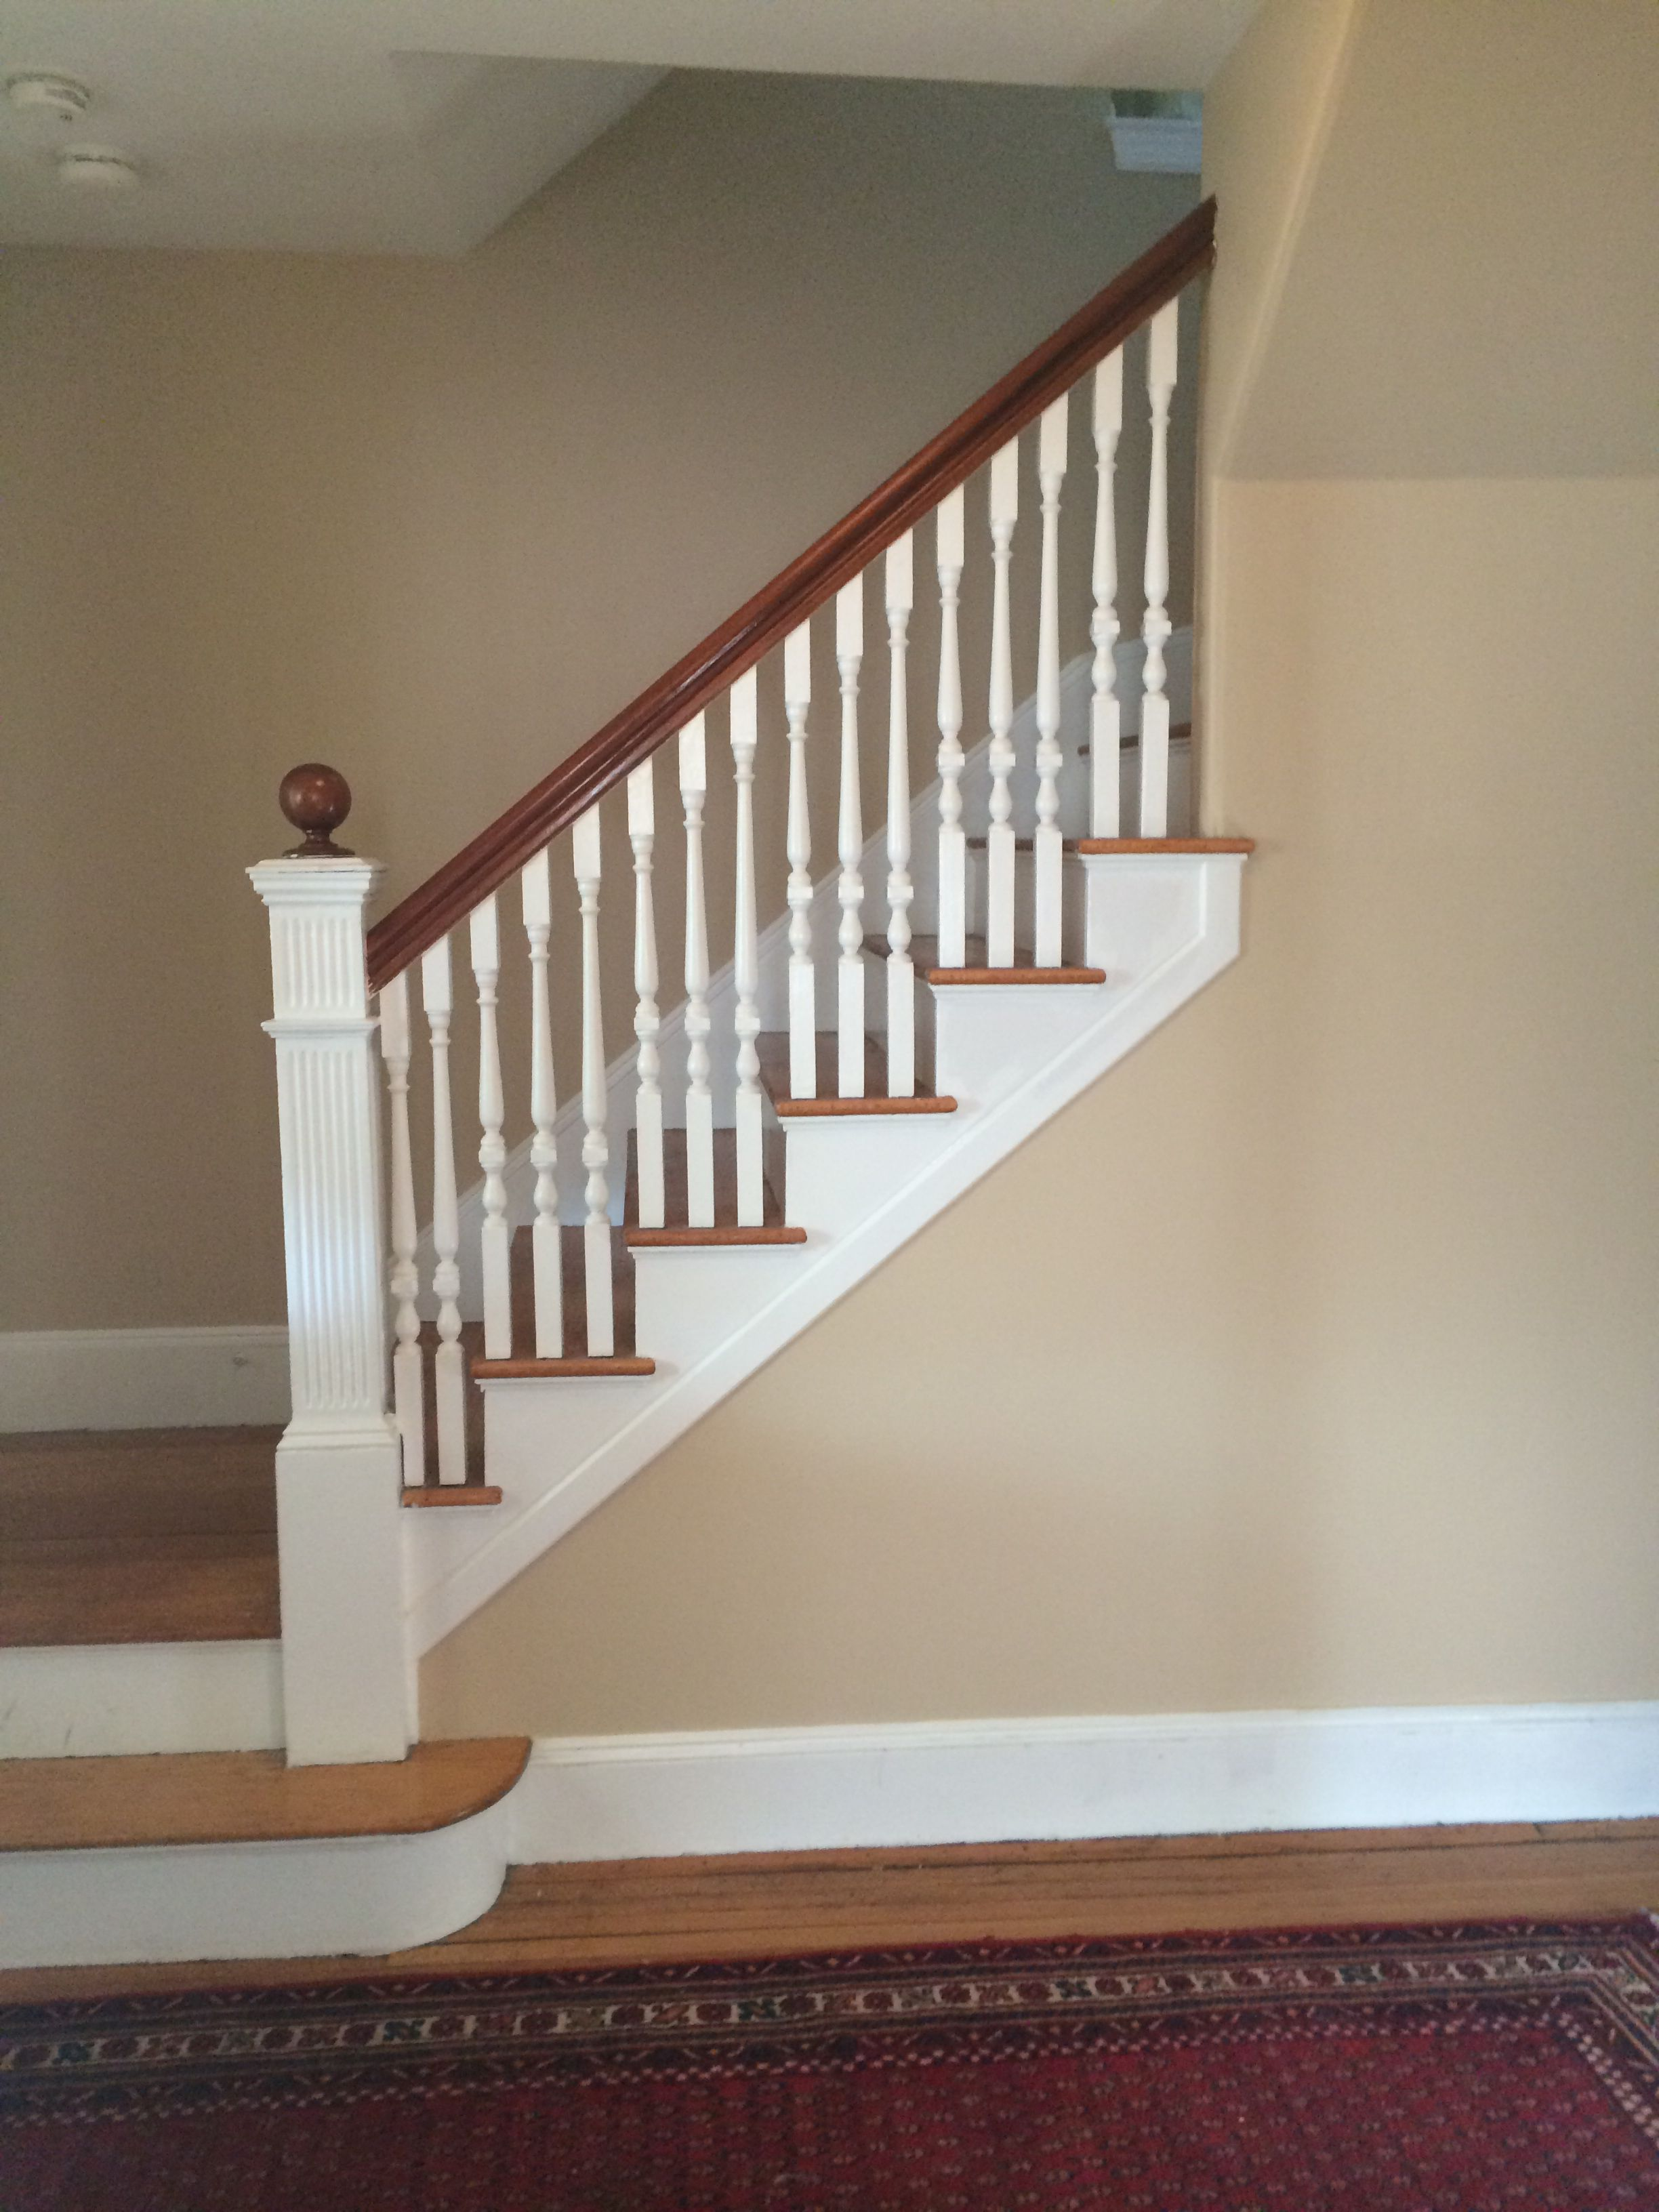 Richmond bisque by benjamin moore decor Pinterest